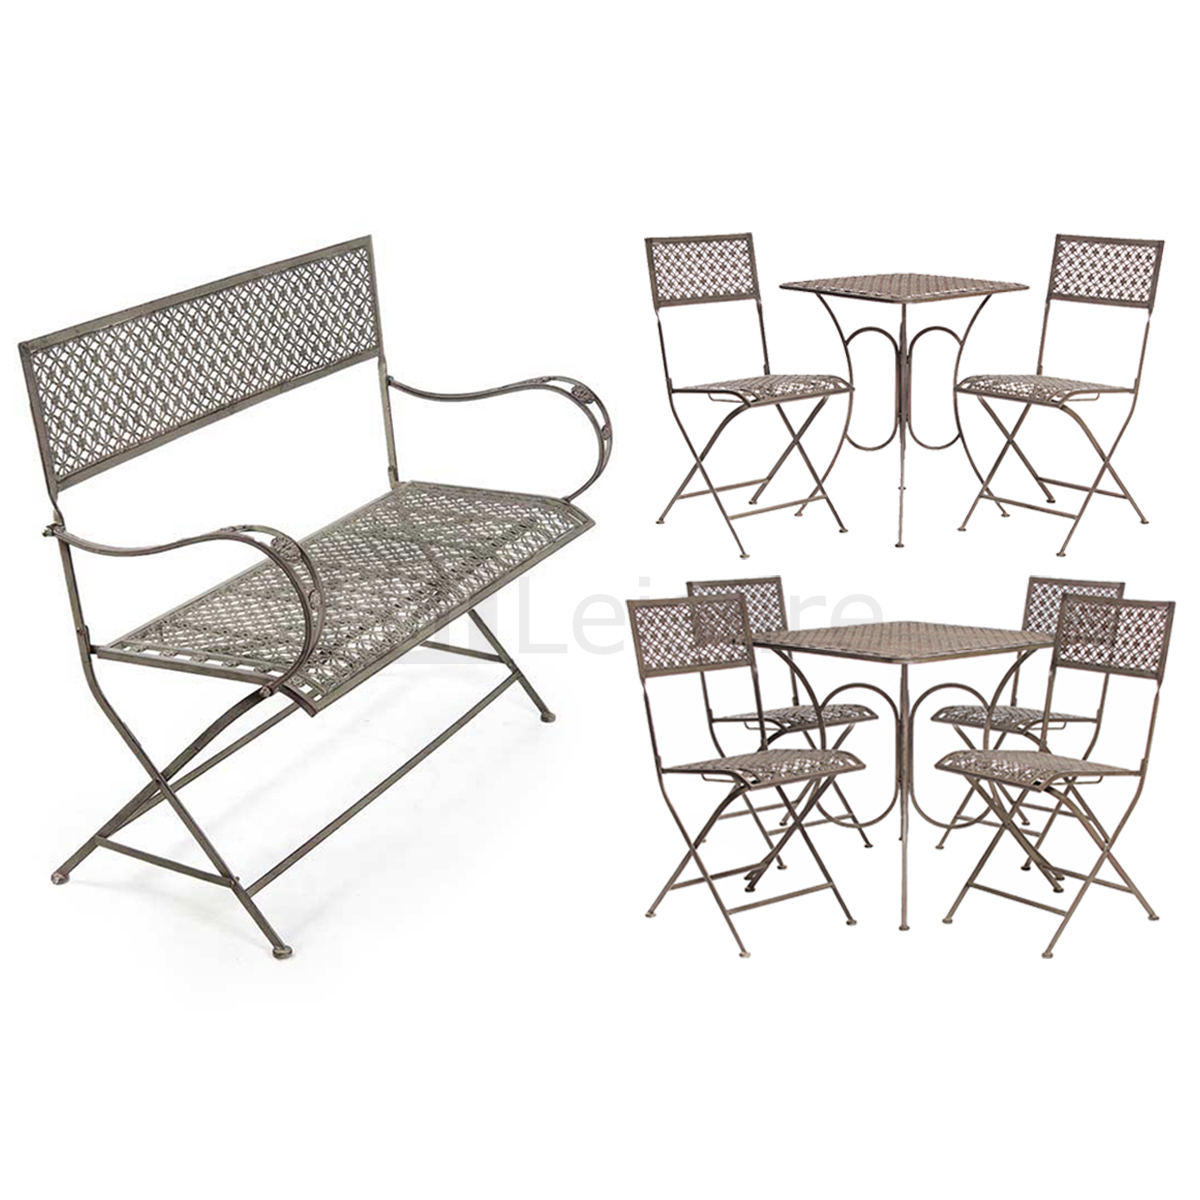 bistro furniture set garden table and chairs metal patio bench ebay